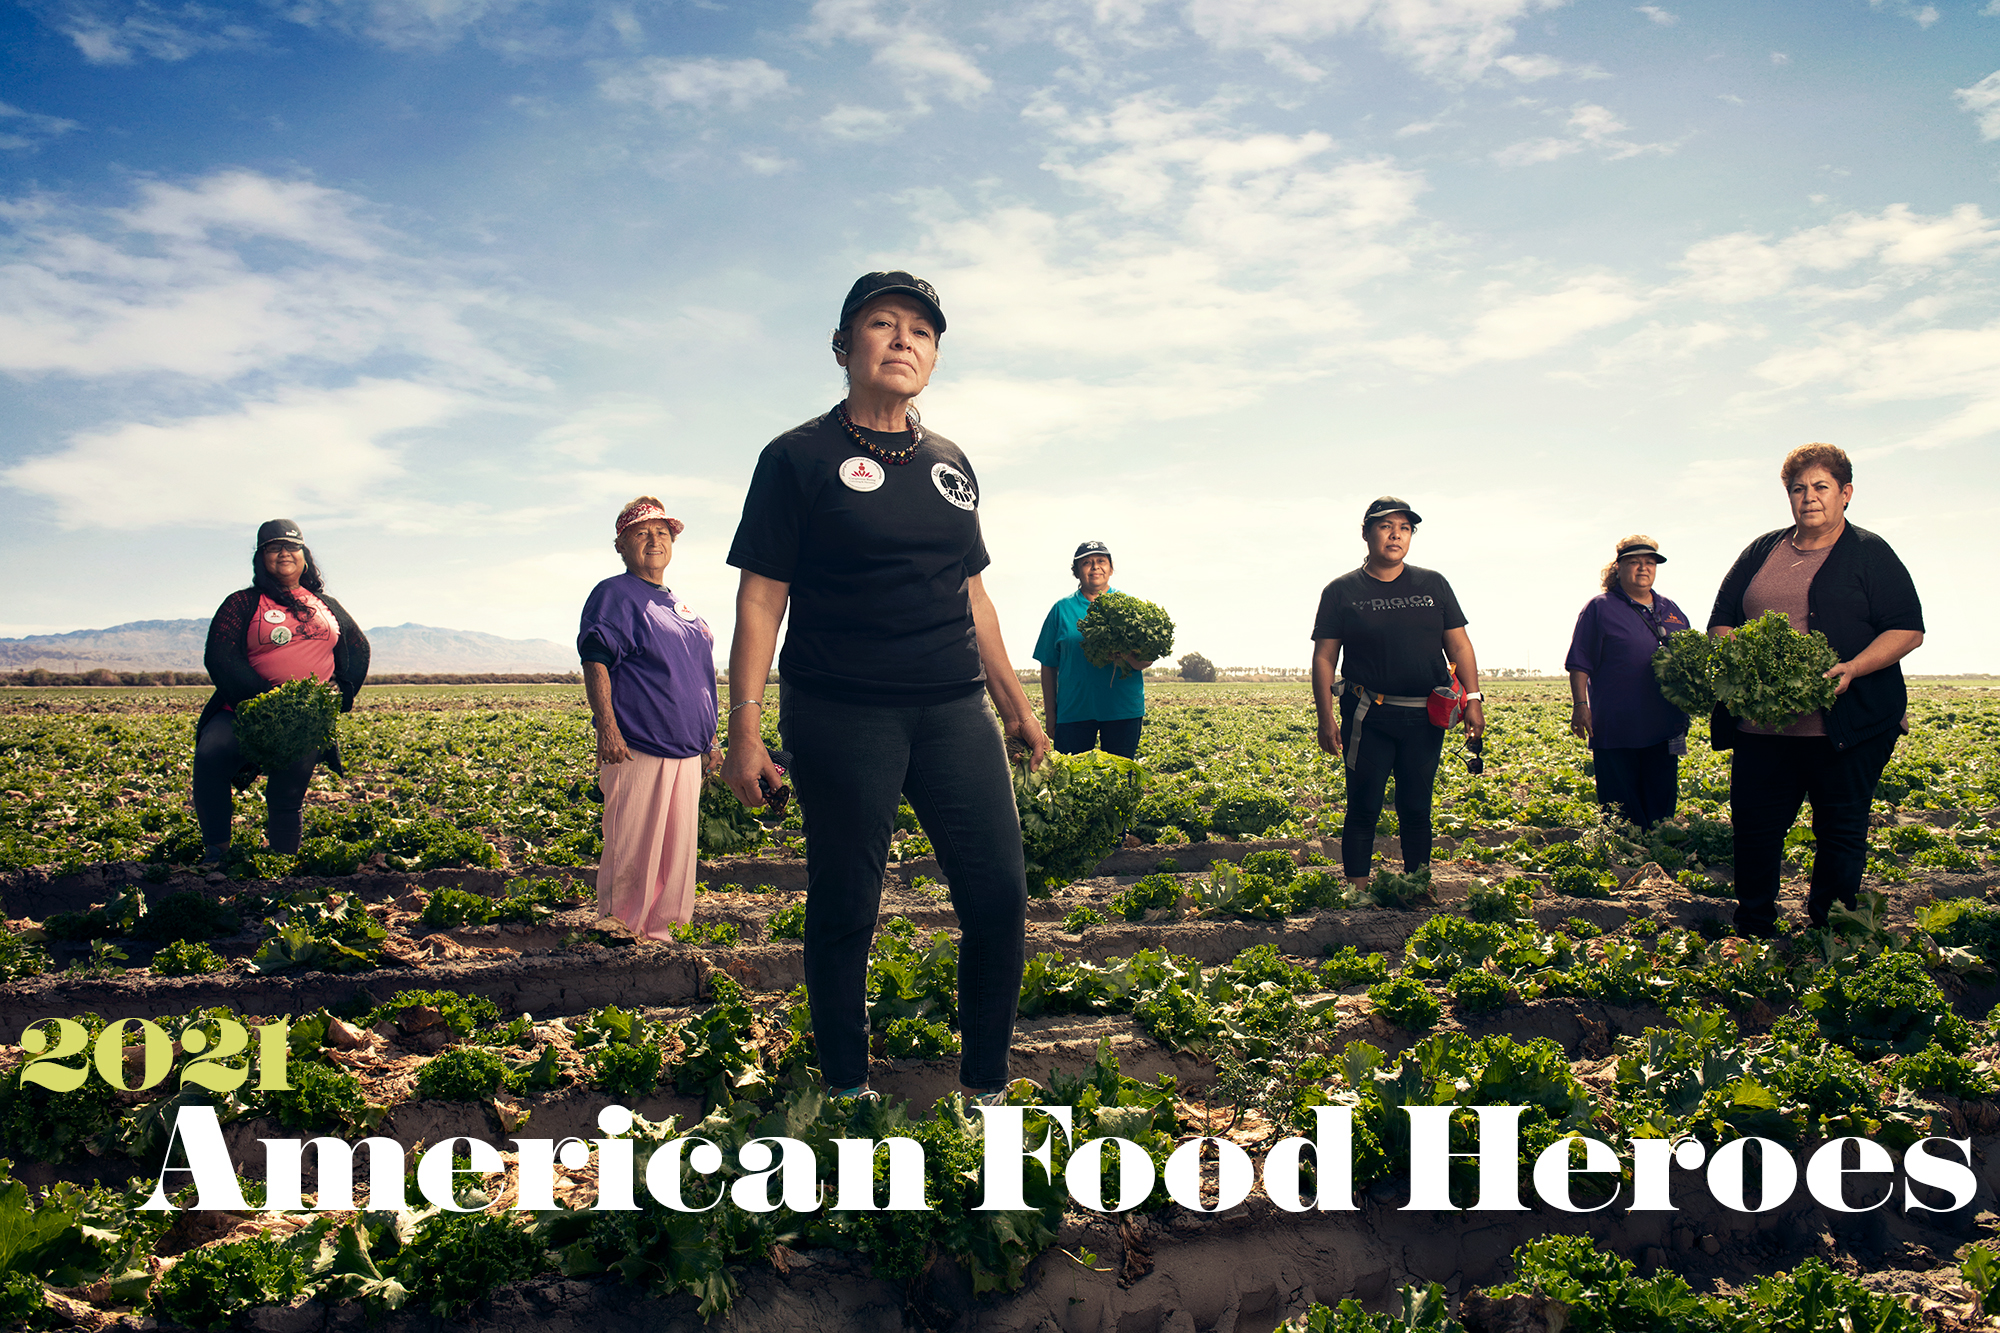 Portrait of Trevino Sauceda with 2021 American Food Heroes written in the lower portion of the frame